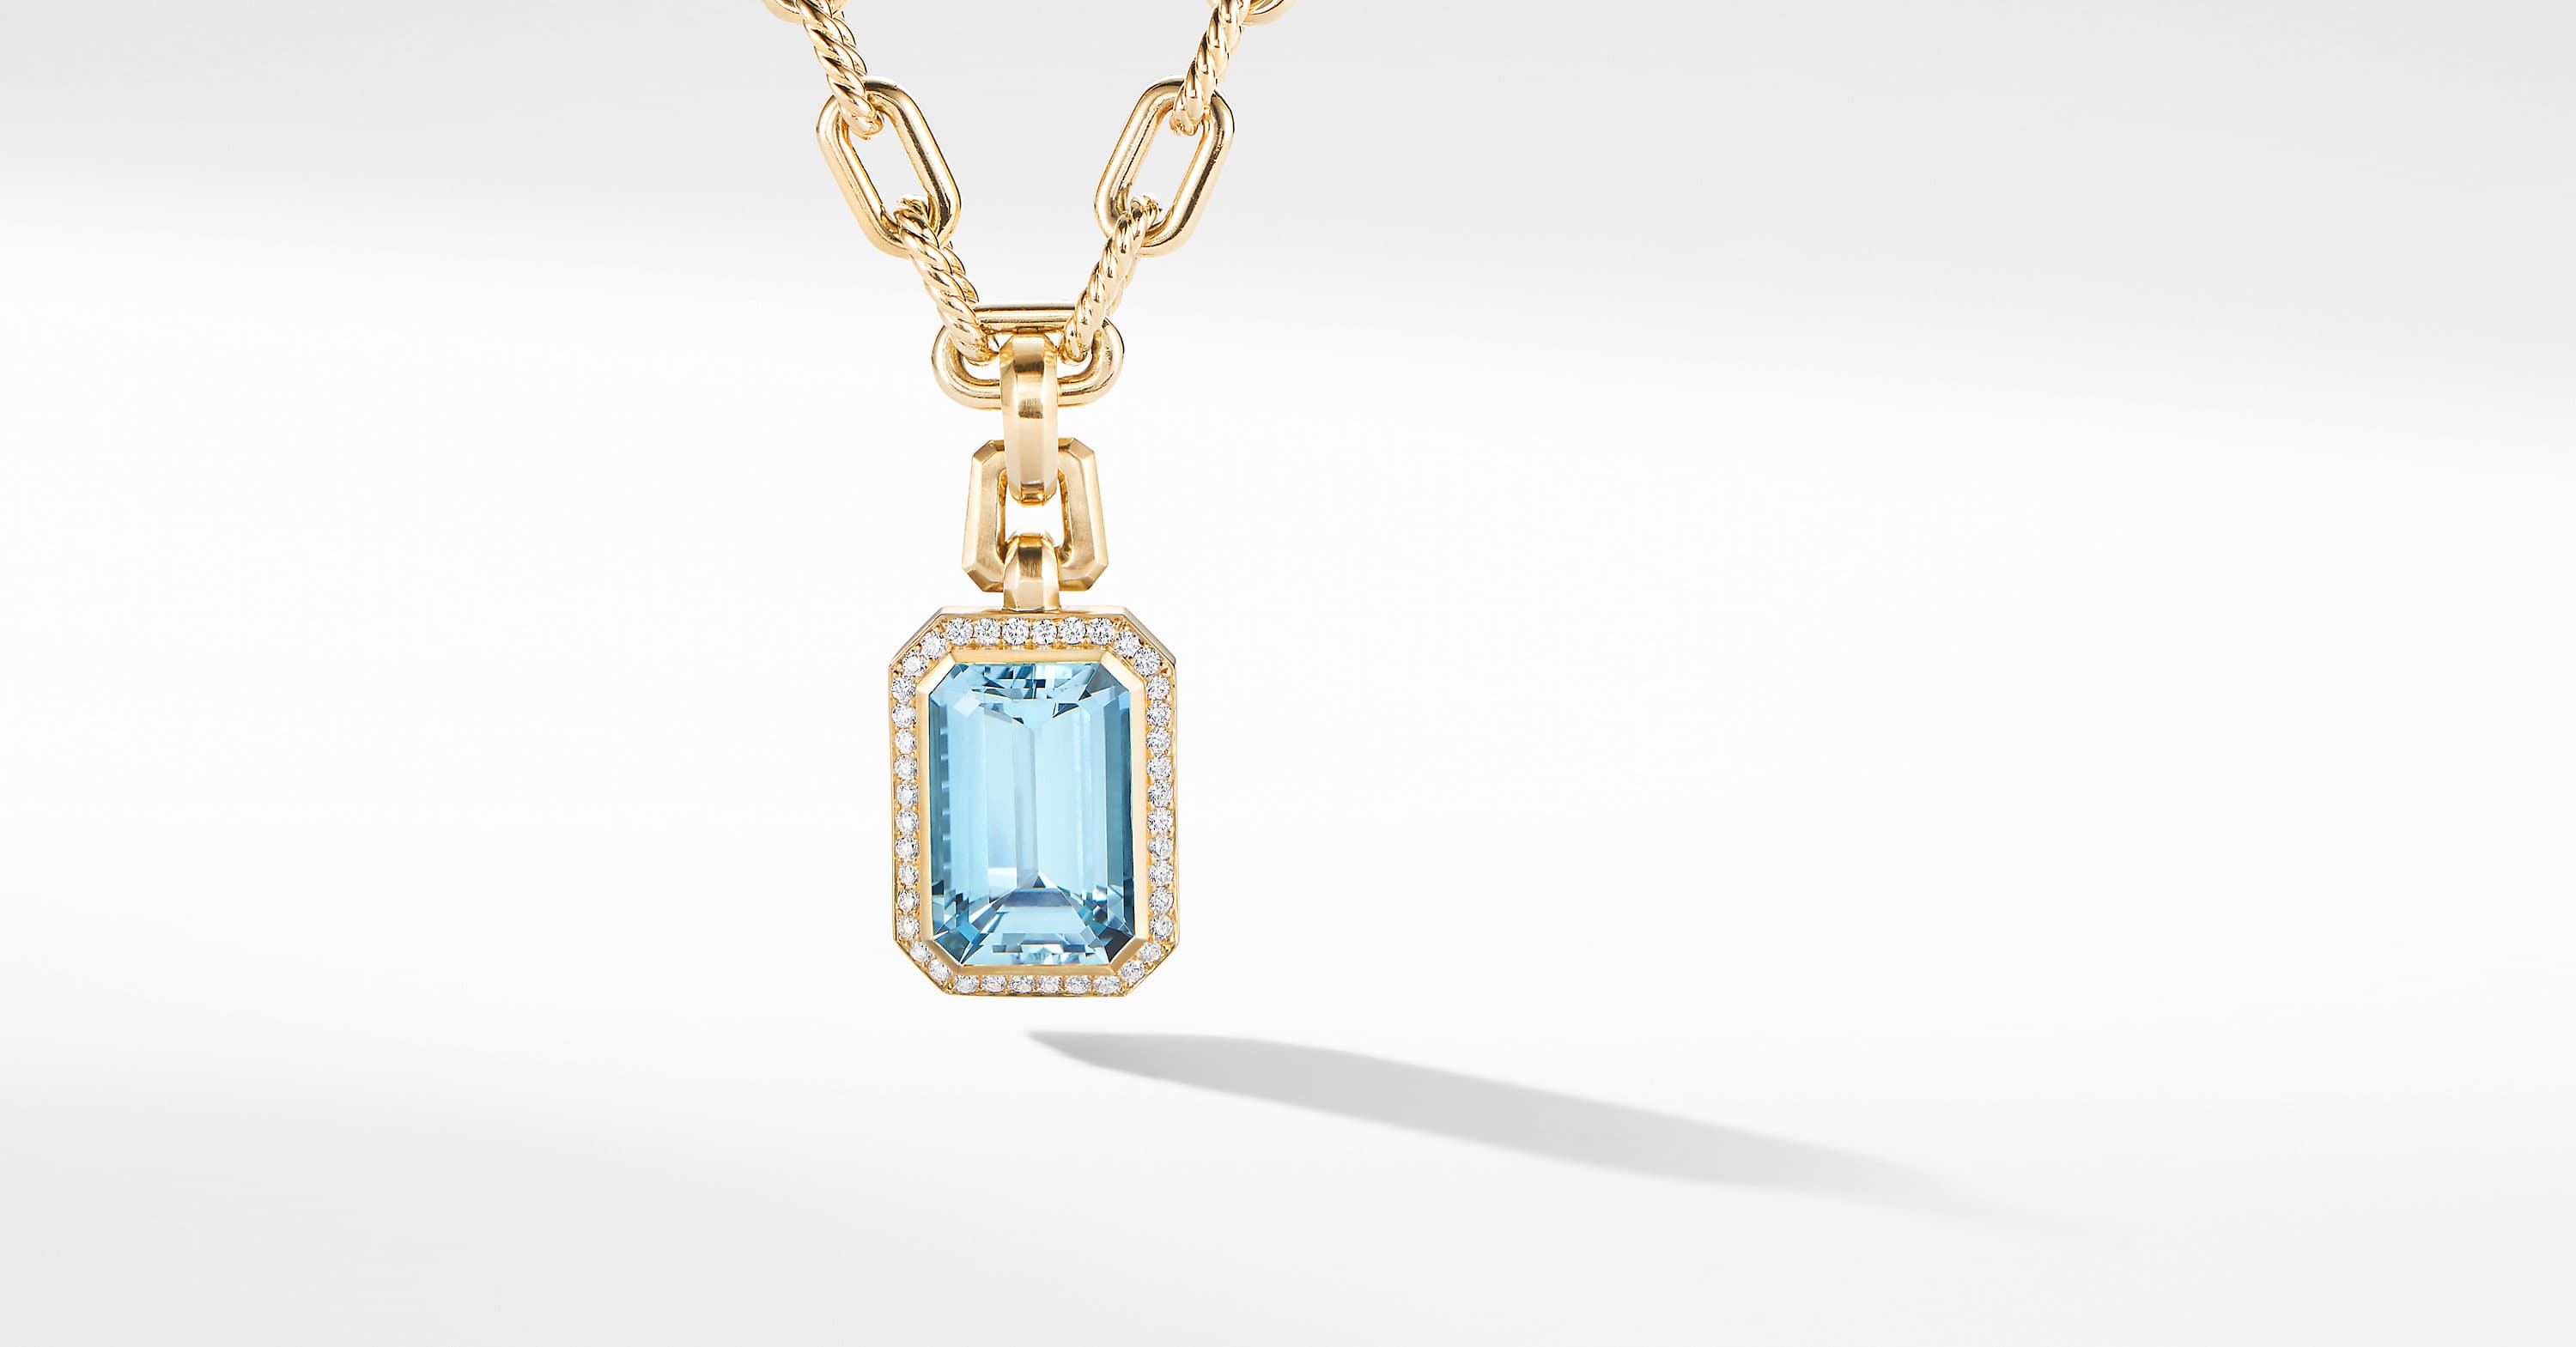 Novella Pendant in 18K Yellow Gold with Diamonds